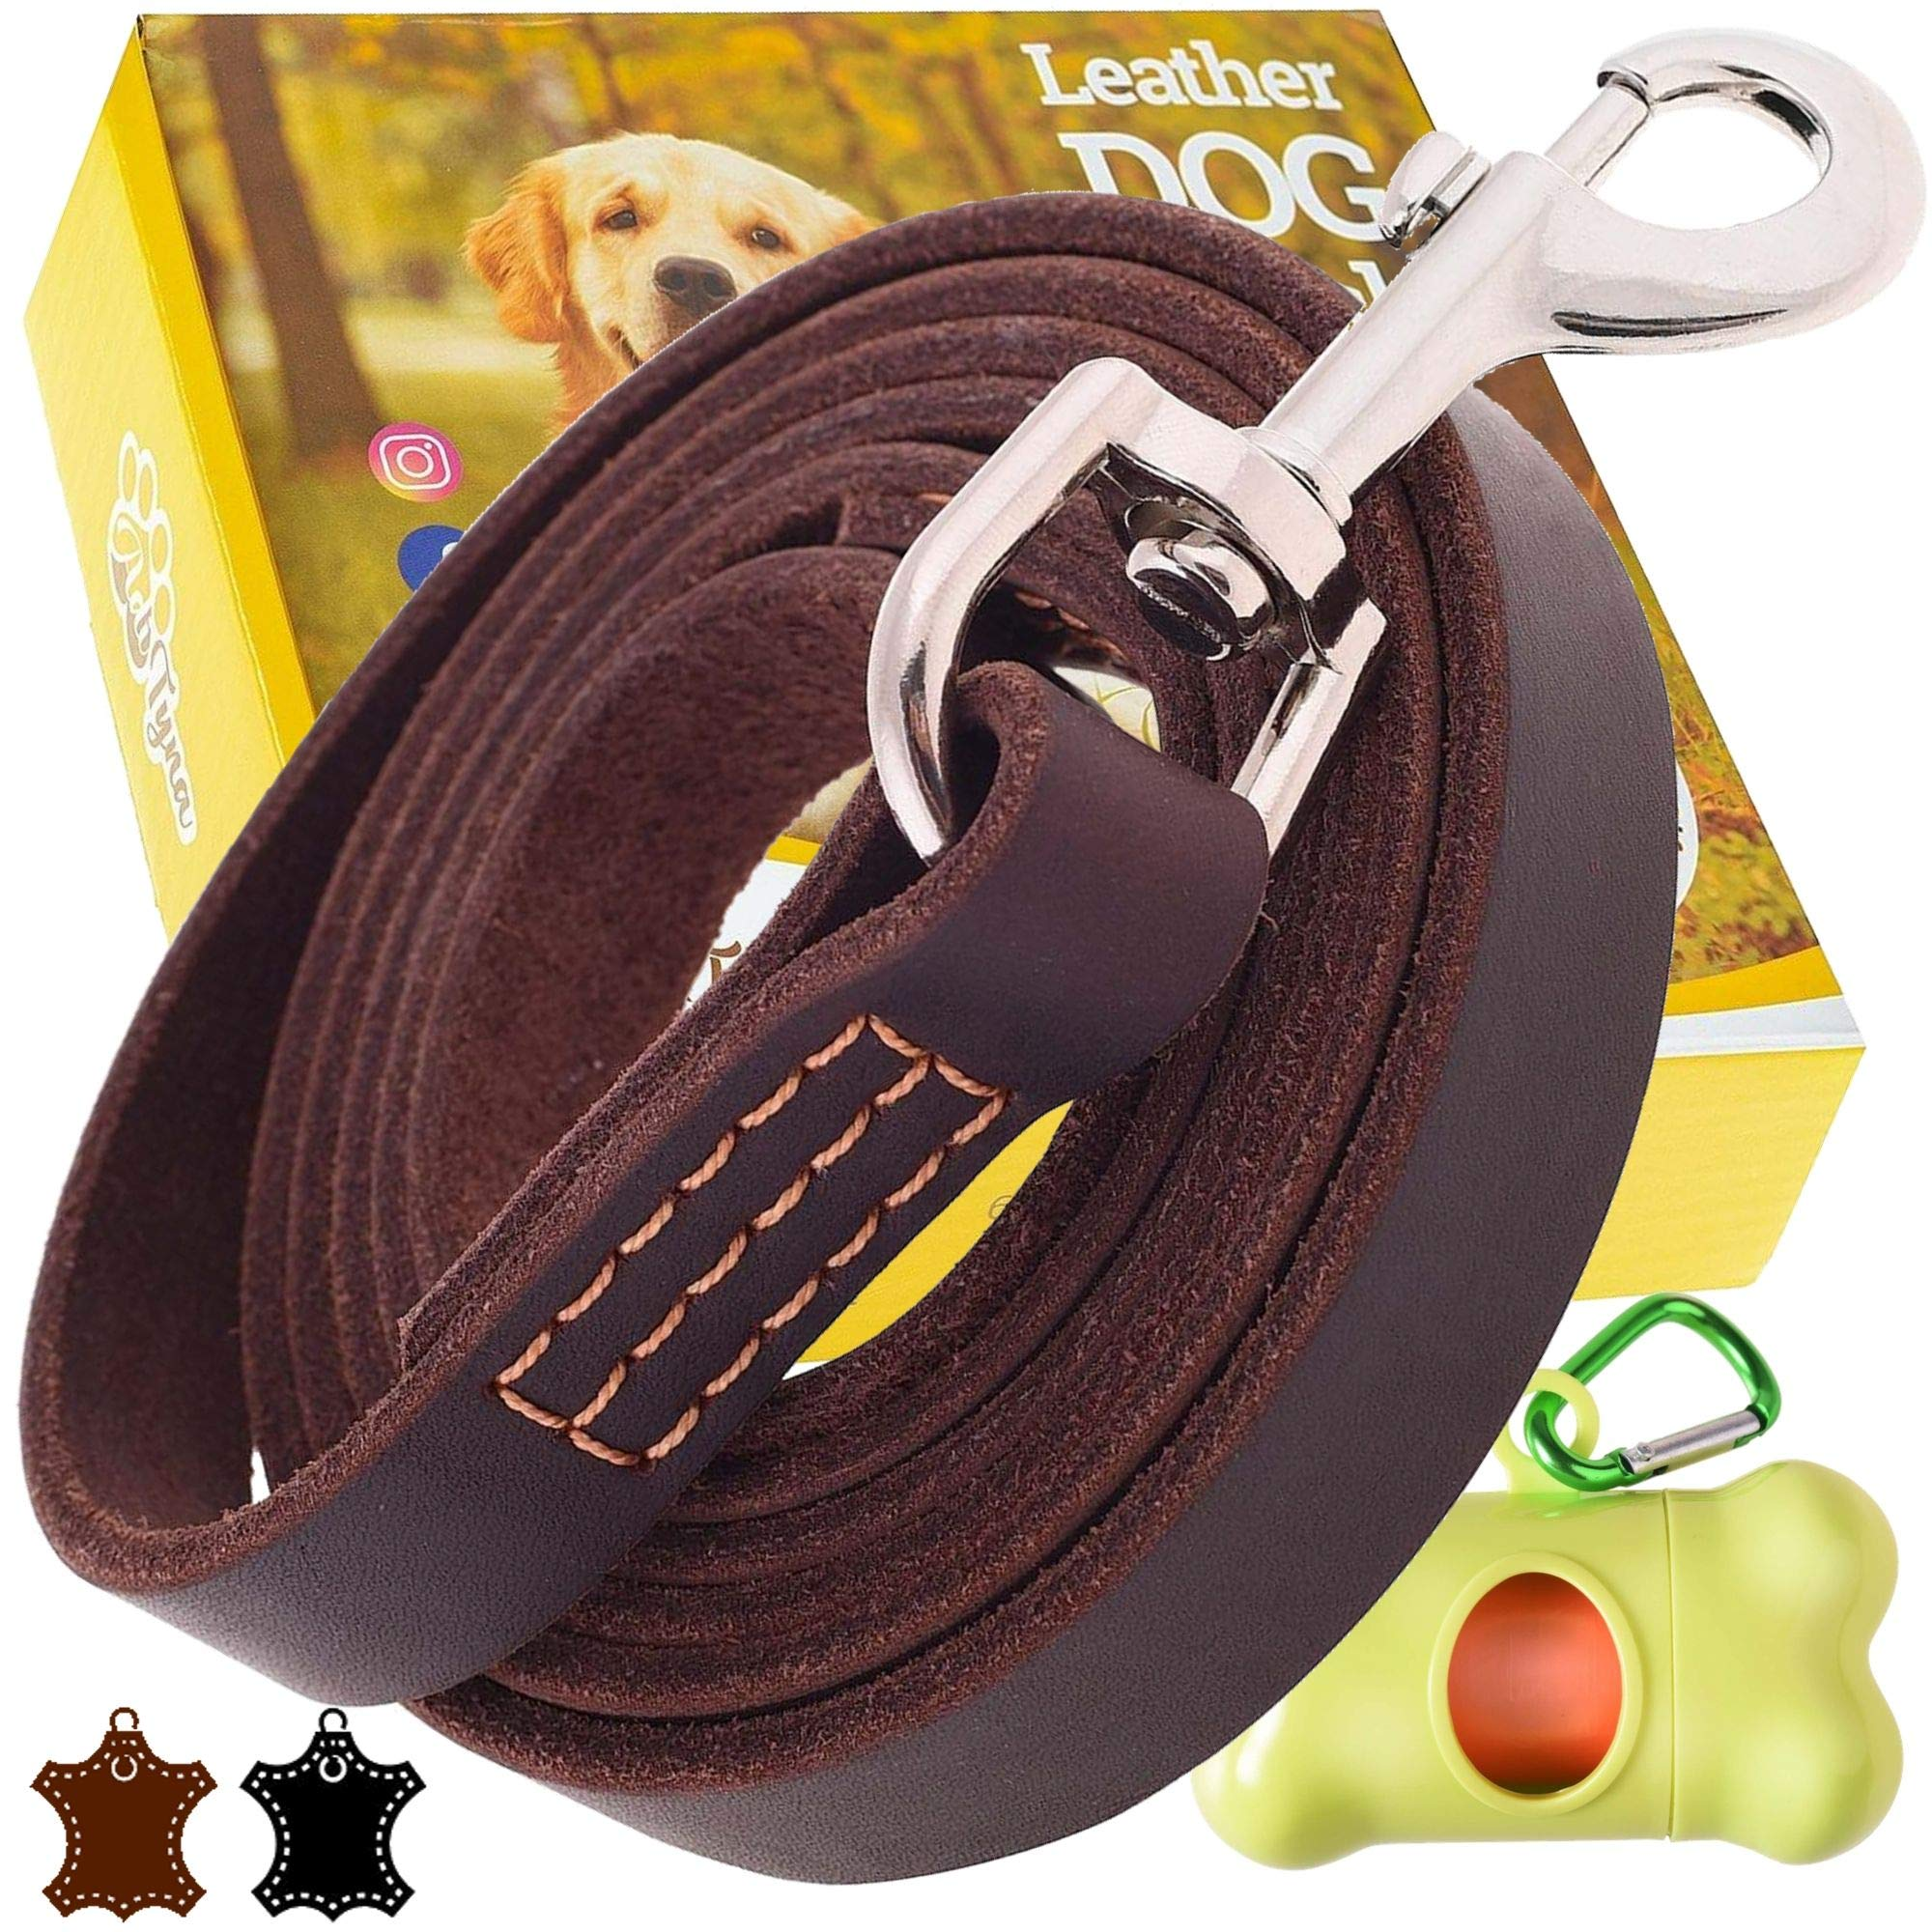 ADITYNA Leather Dog Leash 6 Foot x 3/4 inch - Soft and Strong Leather Leash for Large and Medium Dogs - Dog Training Leash (Brown) by ADITYNA